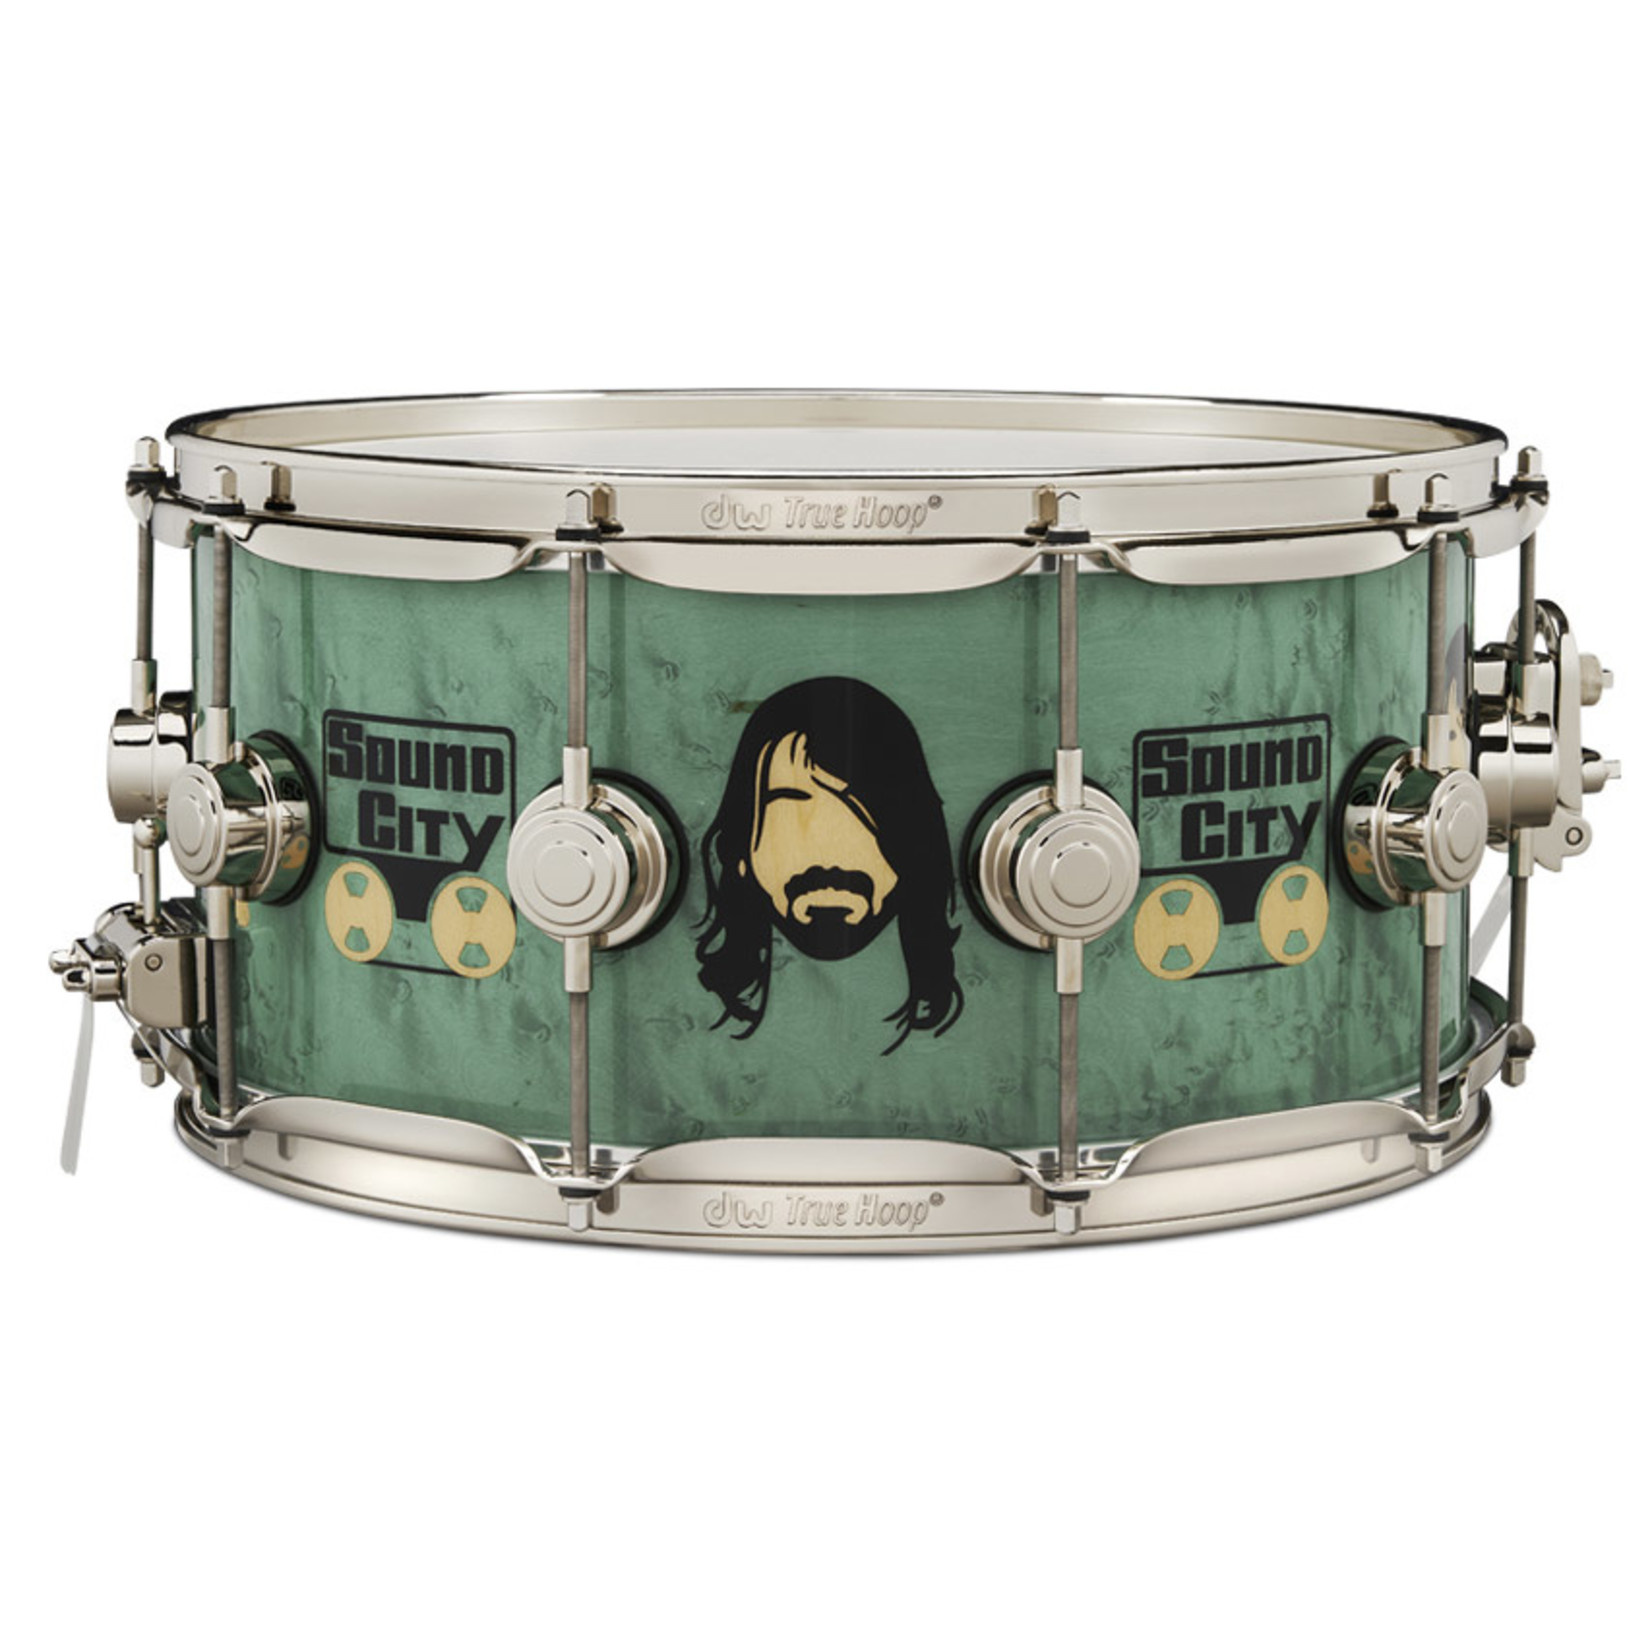 """DW DW 6.5x14 Icon """"Dave grohl"""" Snare Drum"""